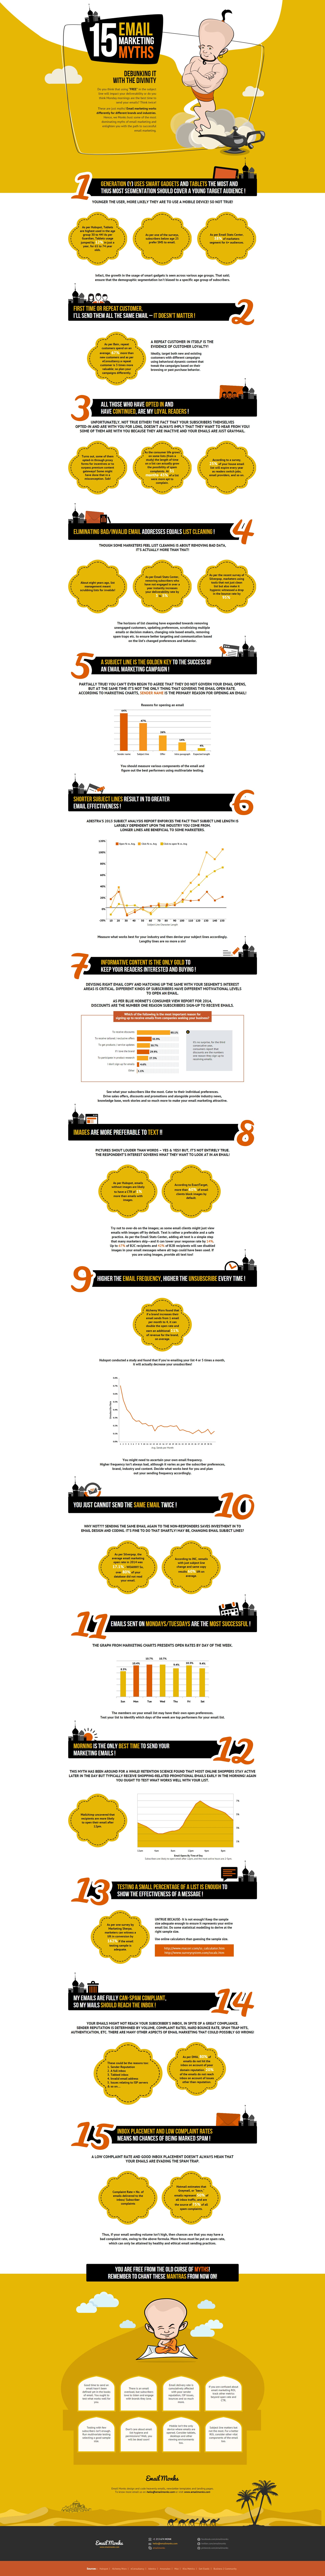 15-email-marketing-myths-infographic emailmonks